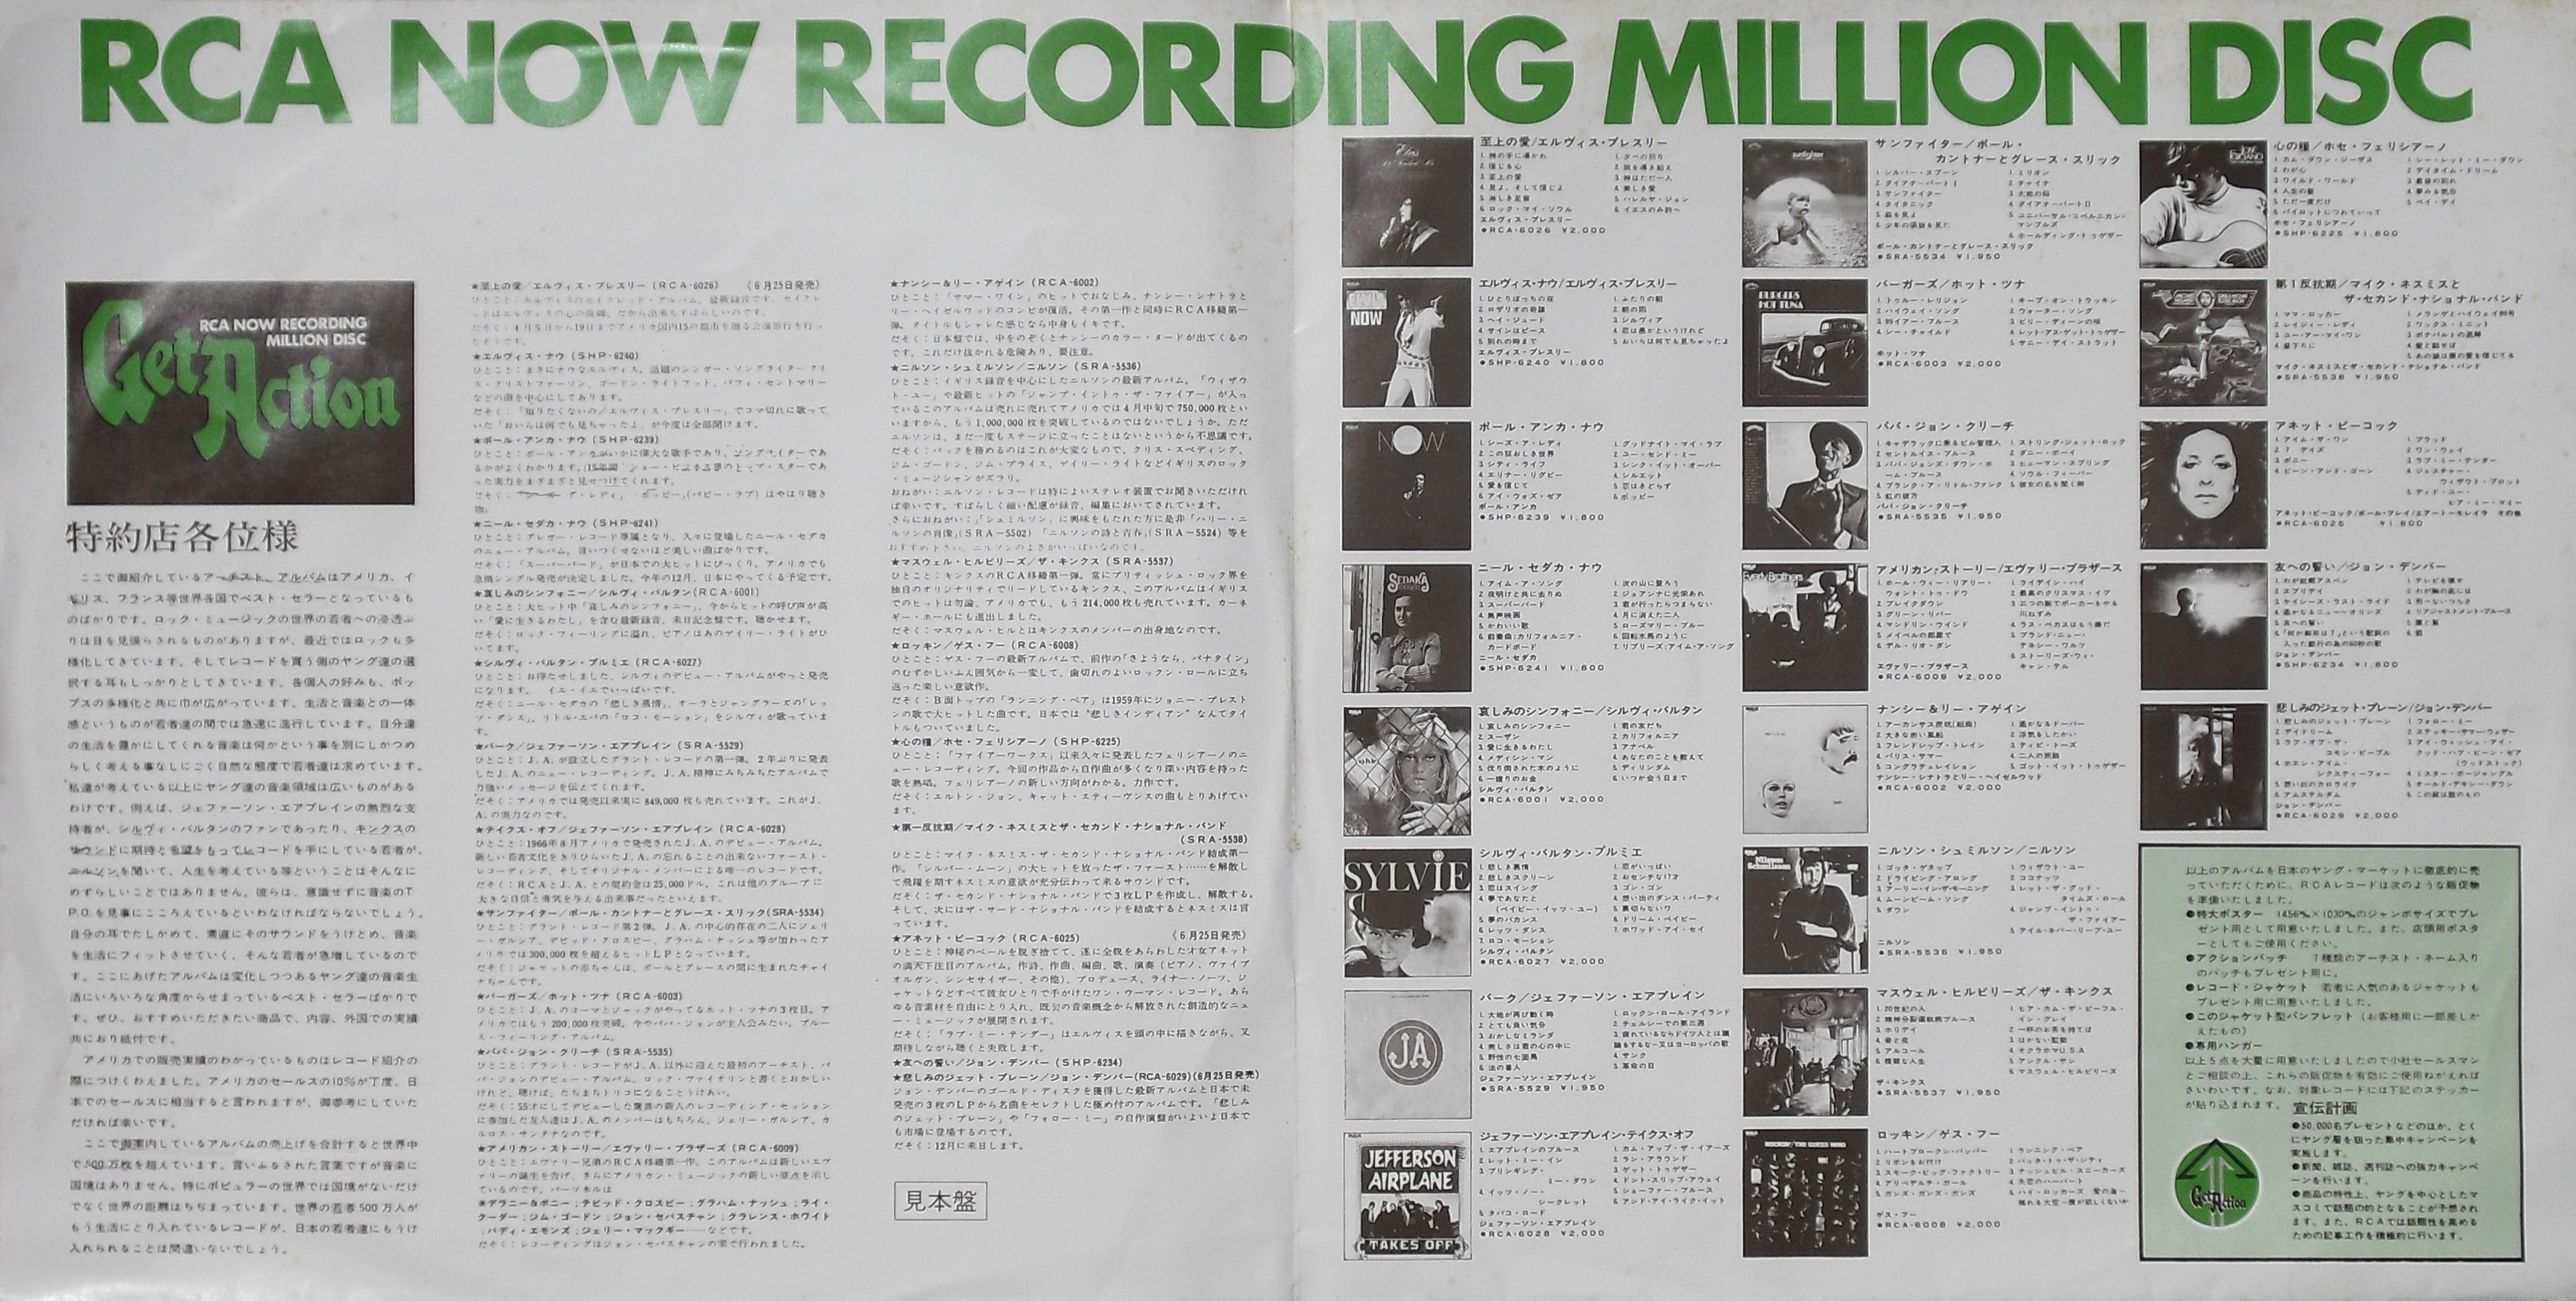 v.a. - RCA NOW RECORDING MILLION DISC 02sro53